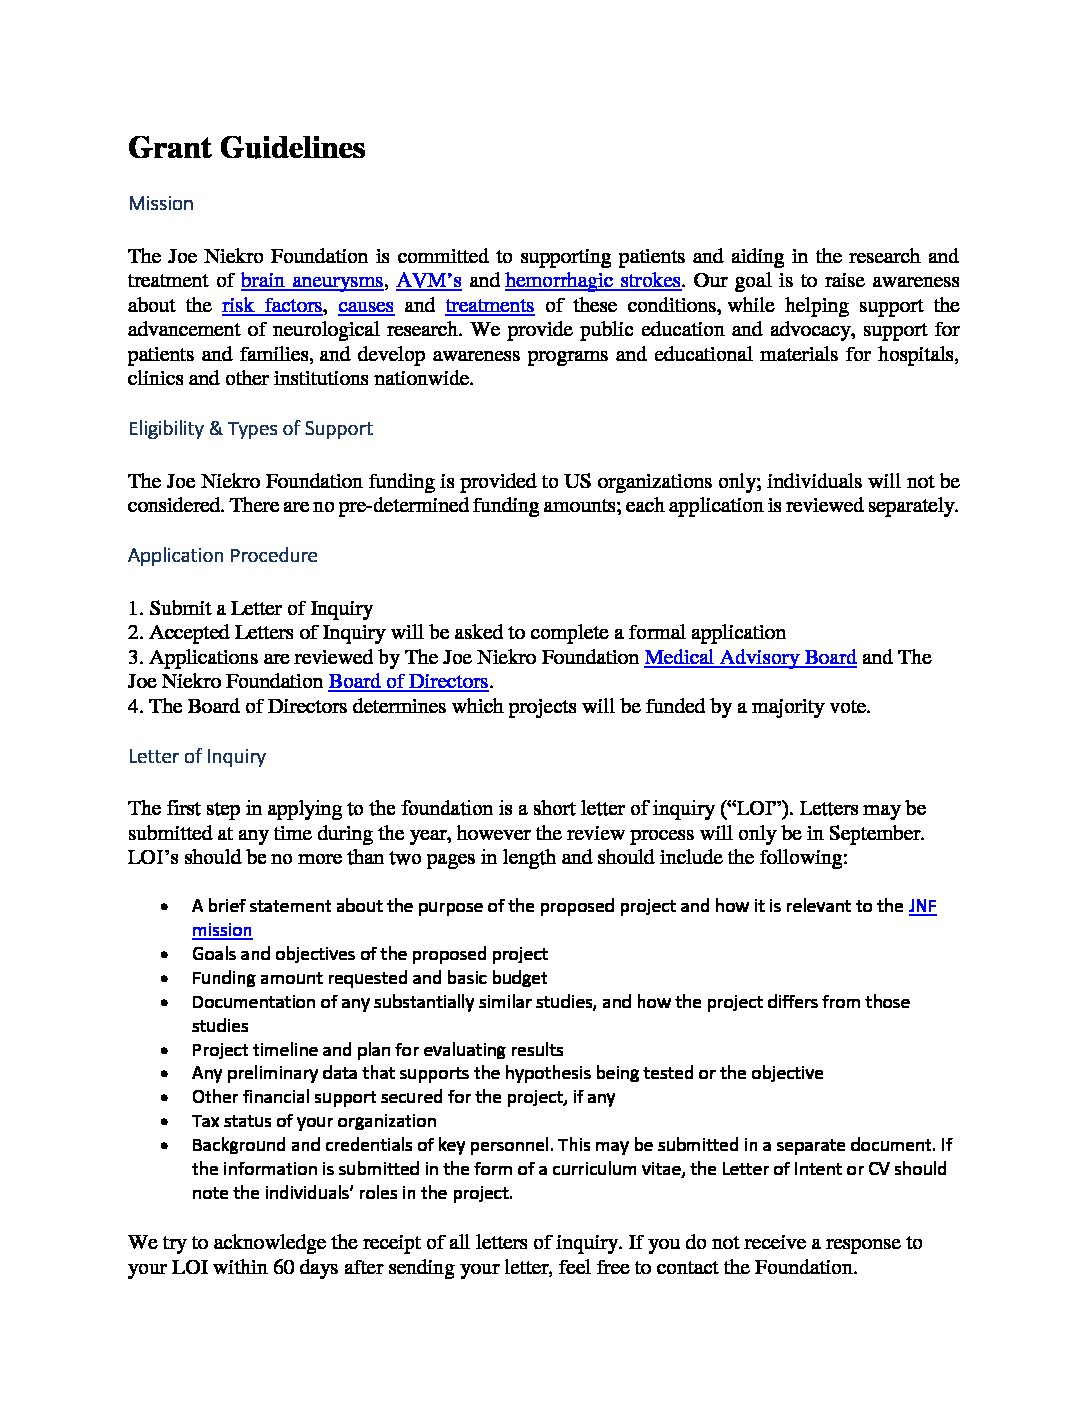 Letter Of Intent Guidelines from www.joeniekrofoundation.com